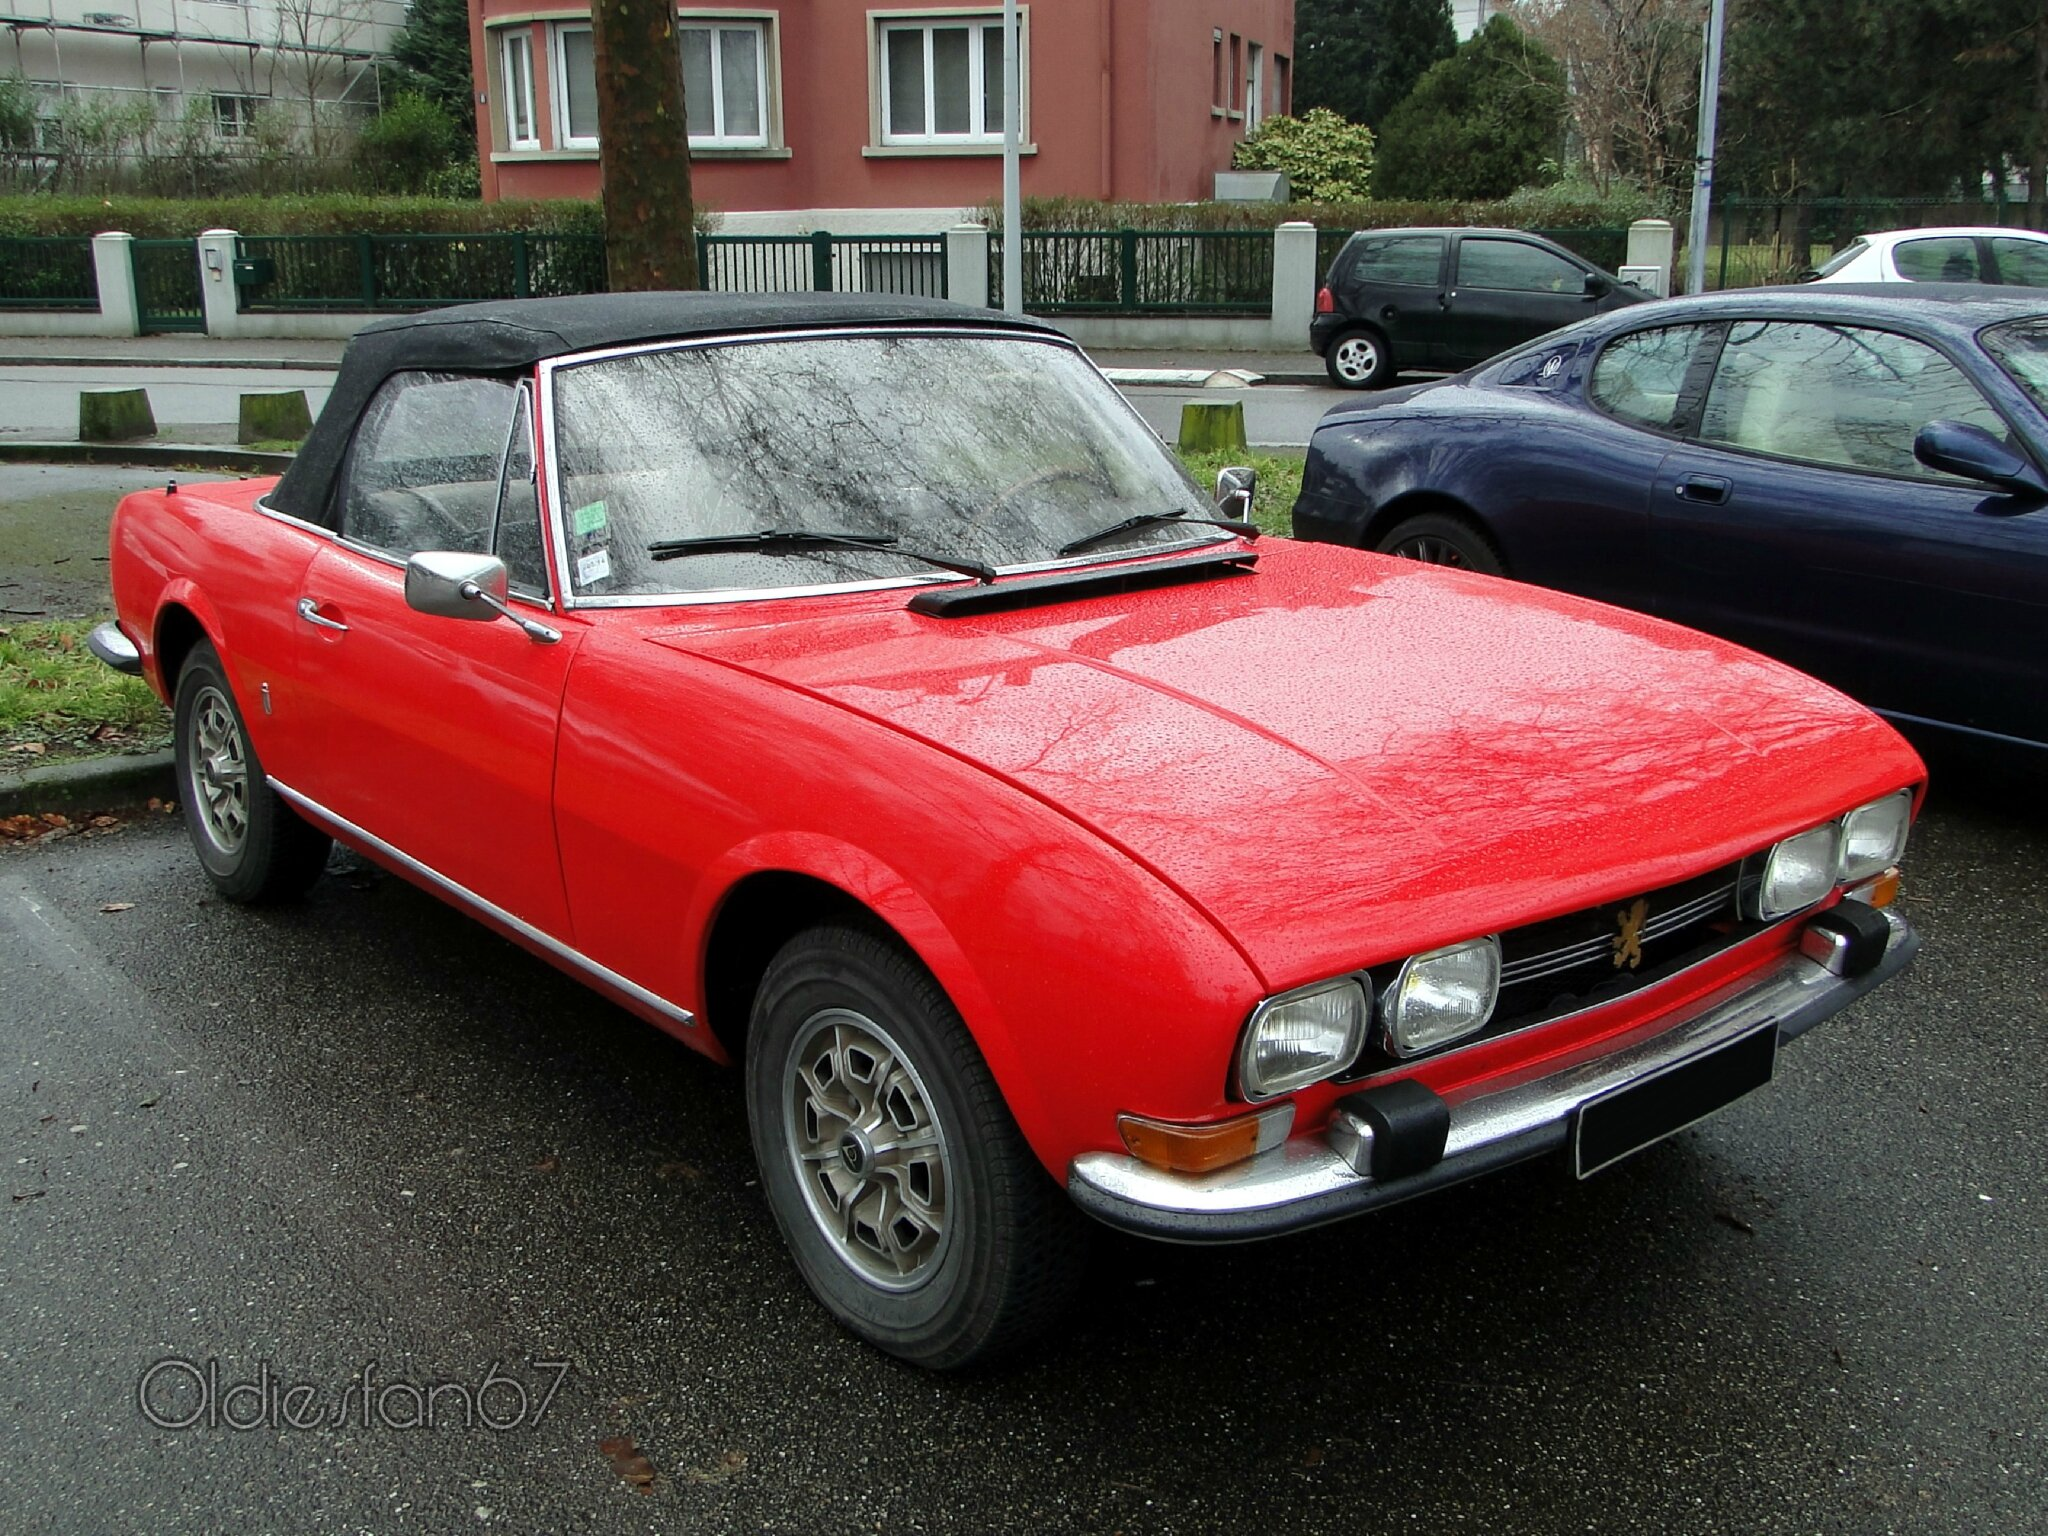 peugeot 504 cabriolet 1969 1974 oldiesfan67 mon blog auto. Black Bedroom Furniture Sets. Home Design Ideas